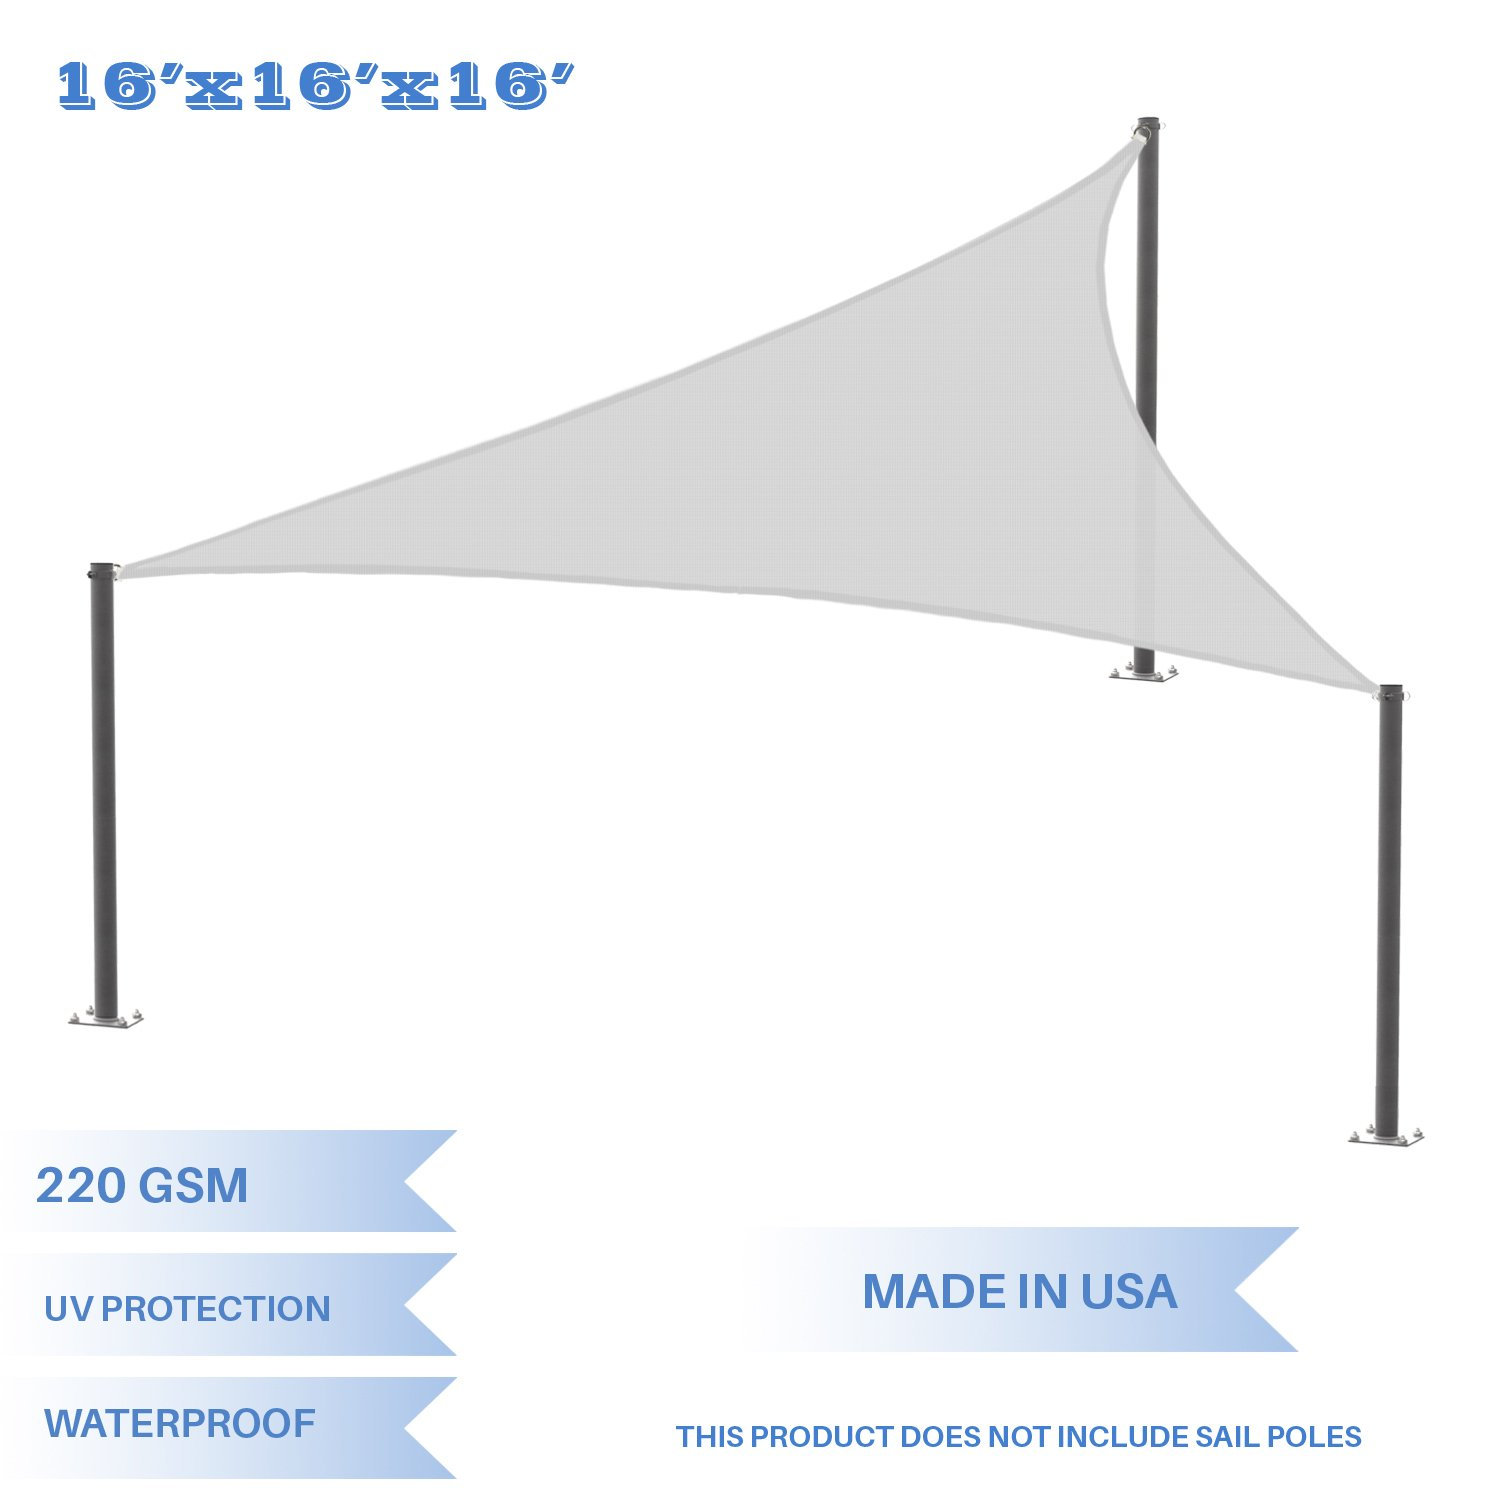 E&K Sunrise 16' x 16' x 16' Waterproof Sun Shade Sail-Light Grey Equilateral triangle UV Block Durable Awning Perfect Canopy Outdoor Garden Backyard-Customized